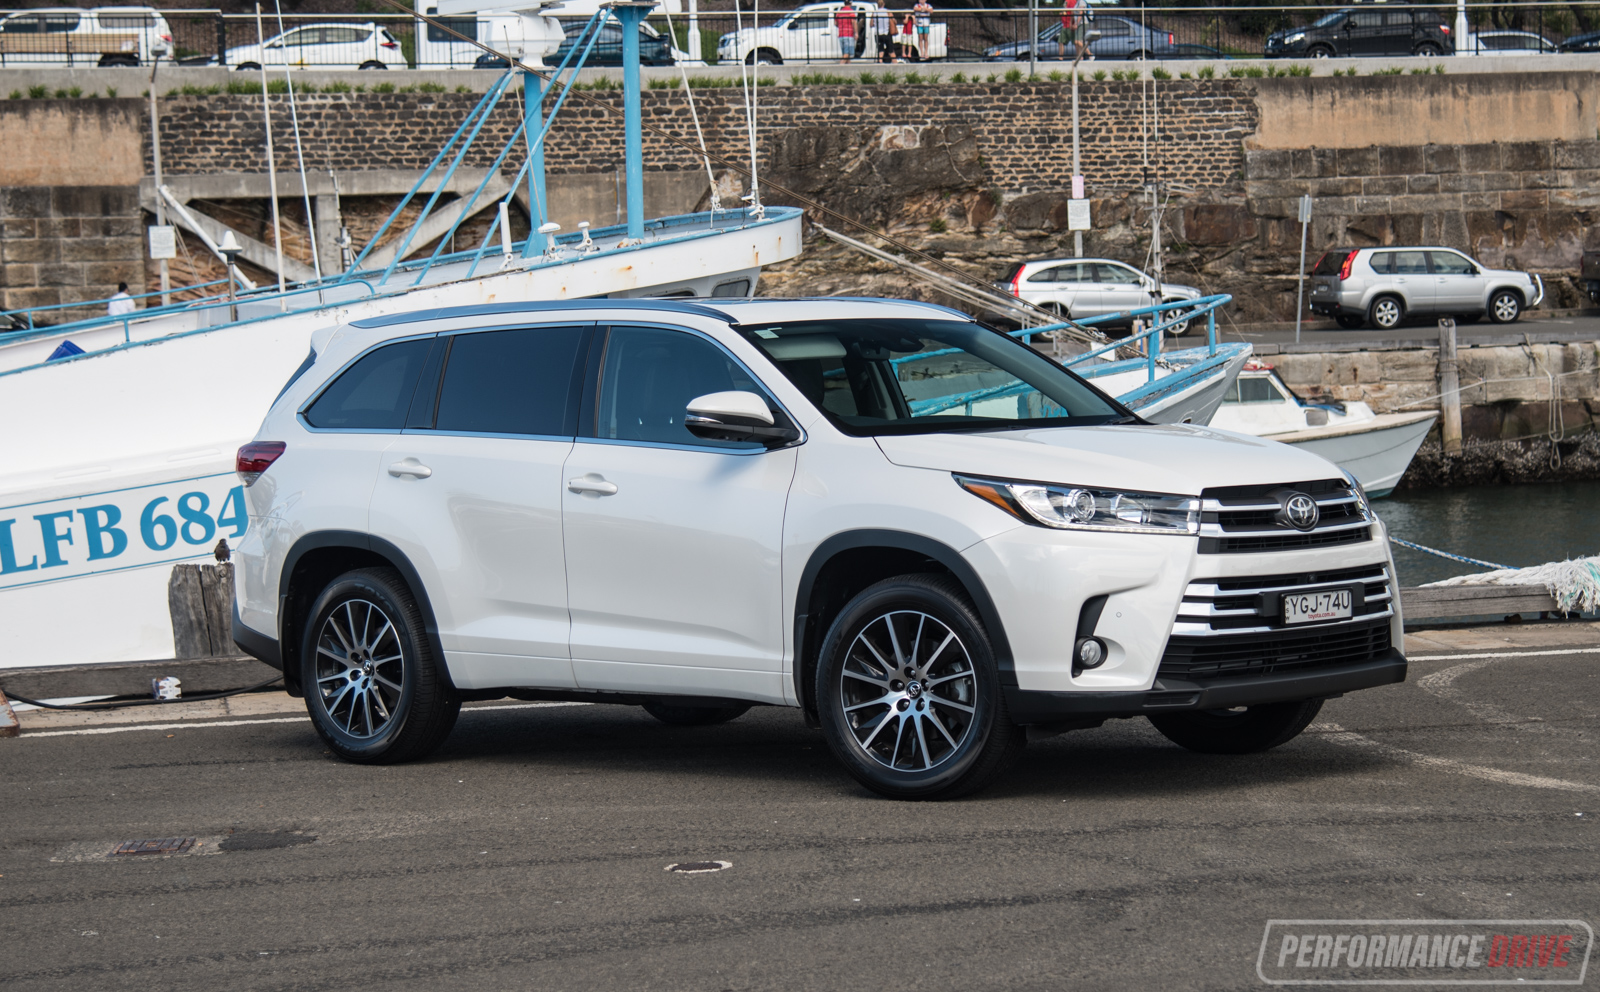 2017 Toyota Kluger Grande AWD review (video) | PerformanceDrive